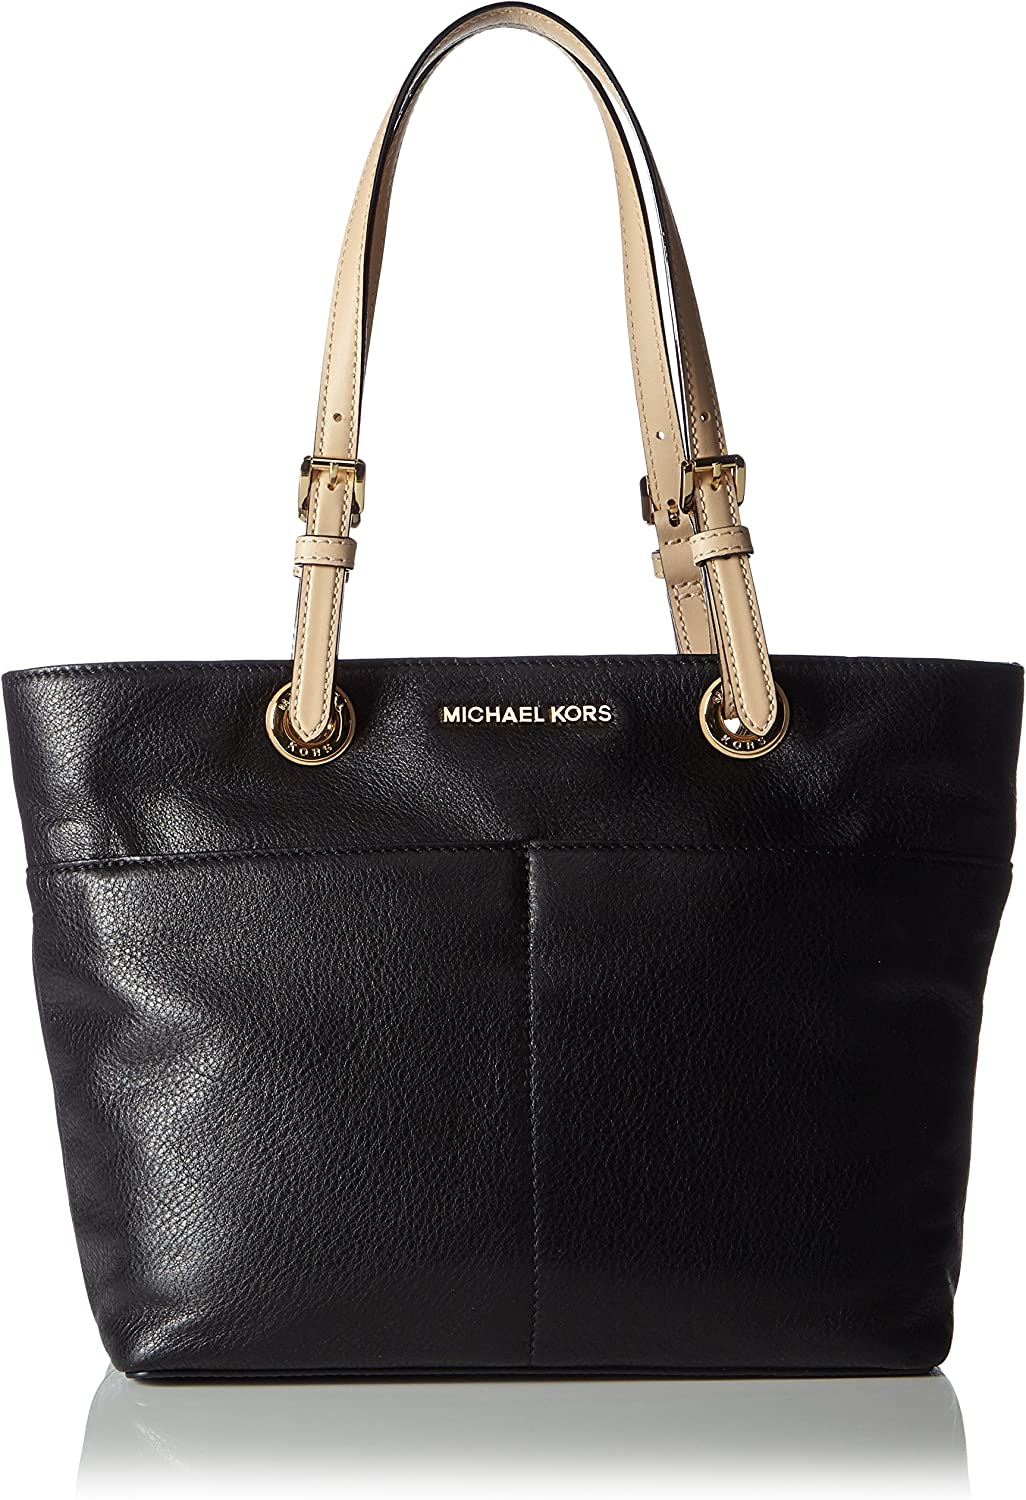 h and m tasche michael kors